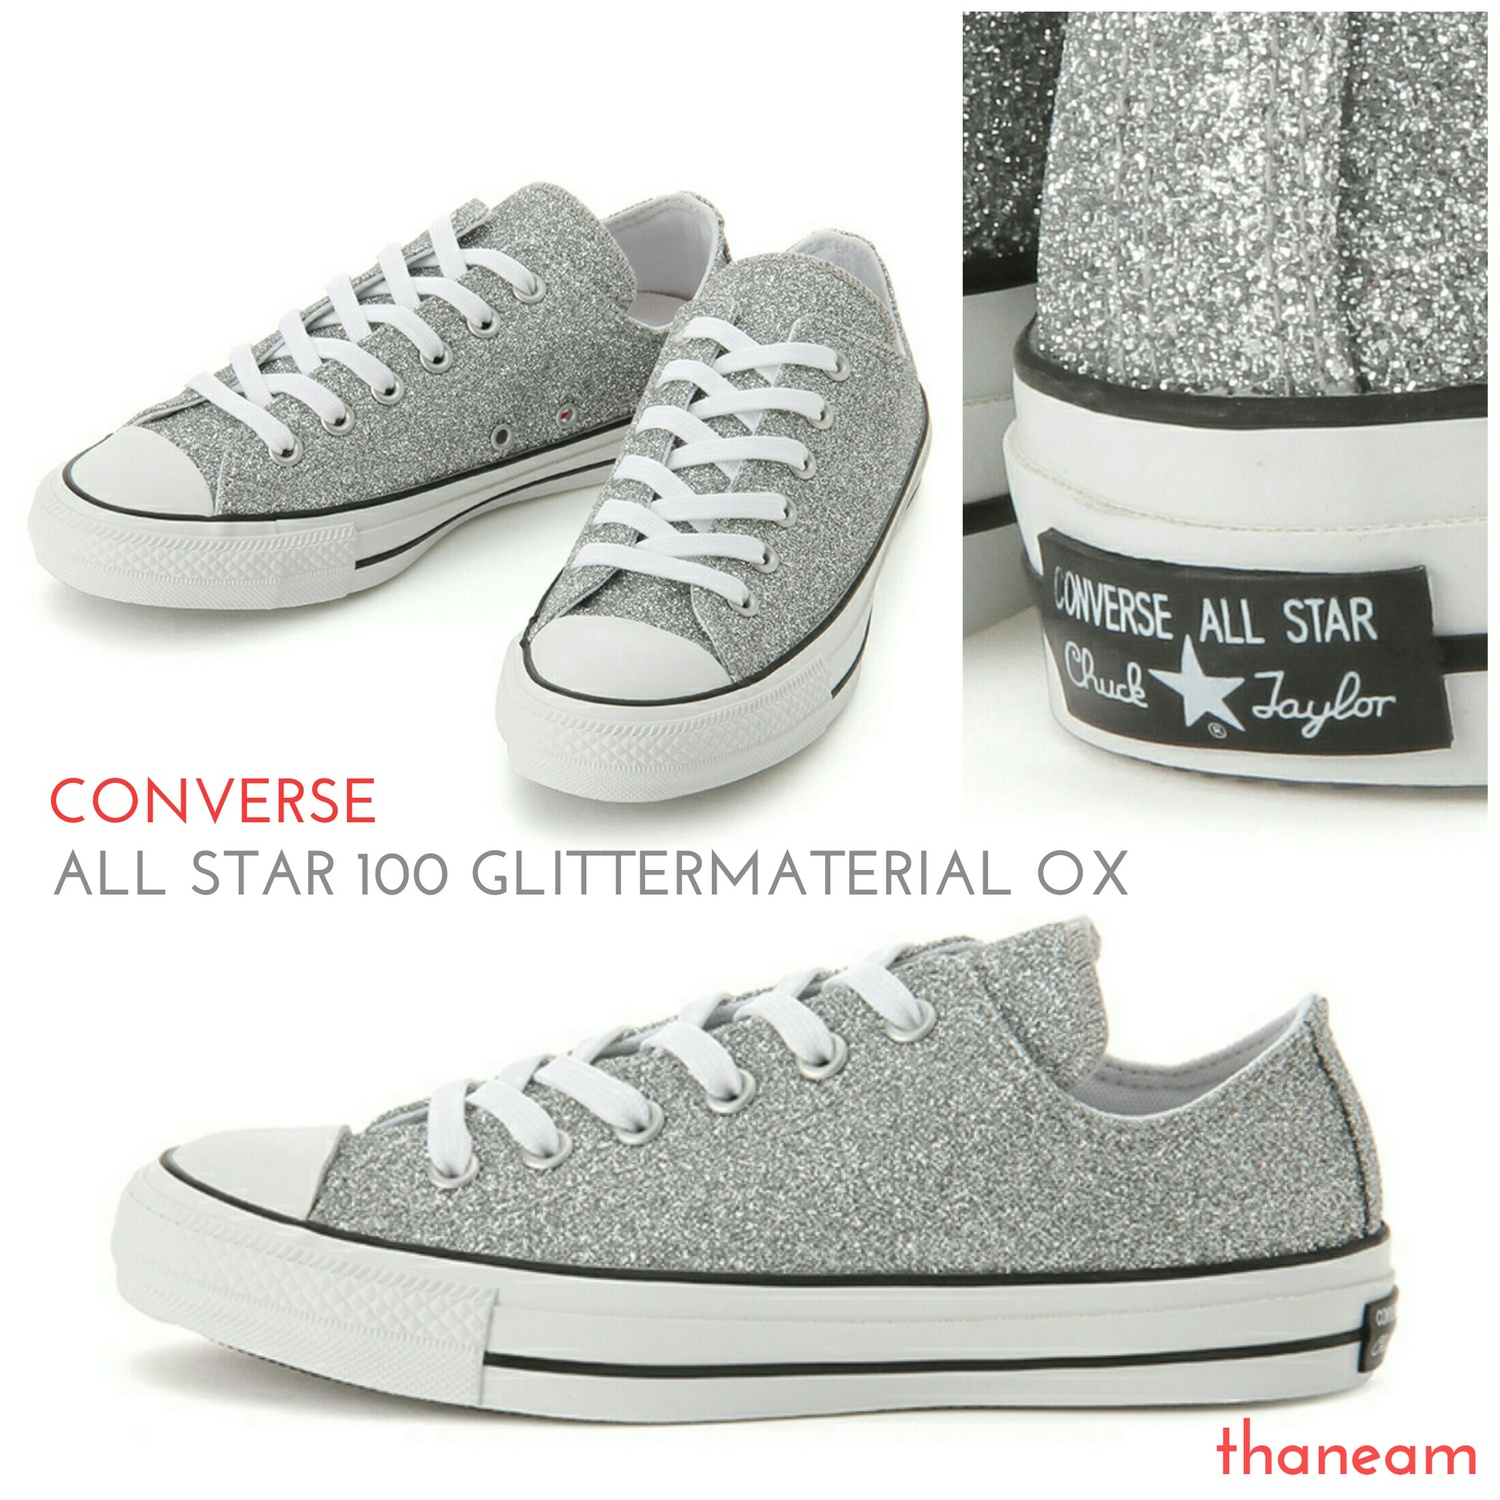 ★CONVERSE★ALL STAR 100 GLITTERMATERIAL OX シルバー送料込